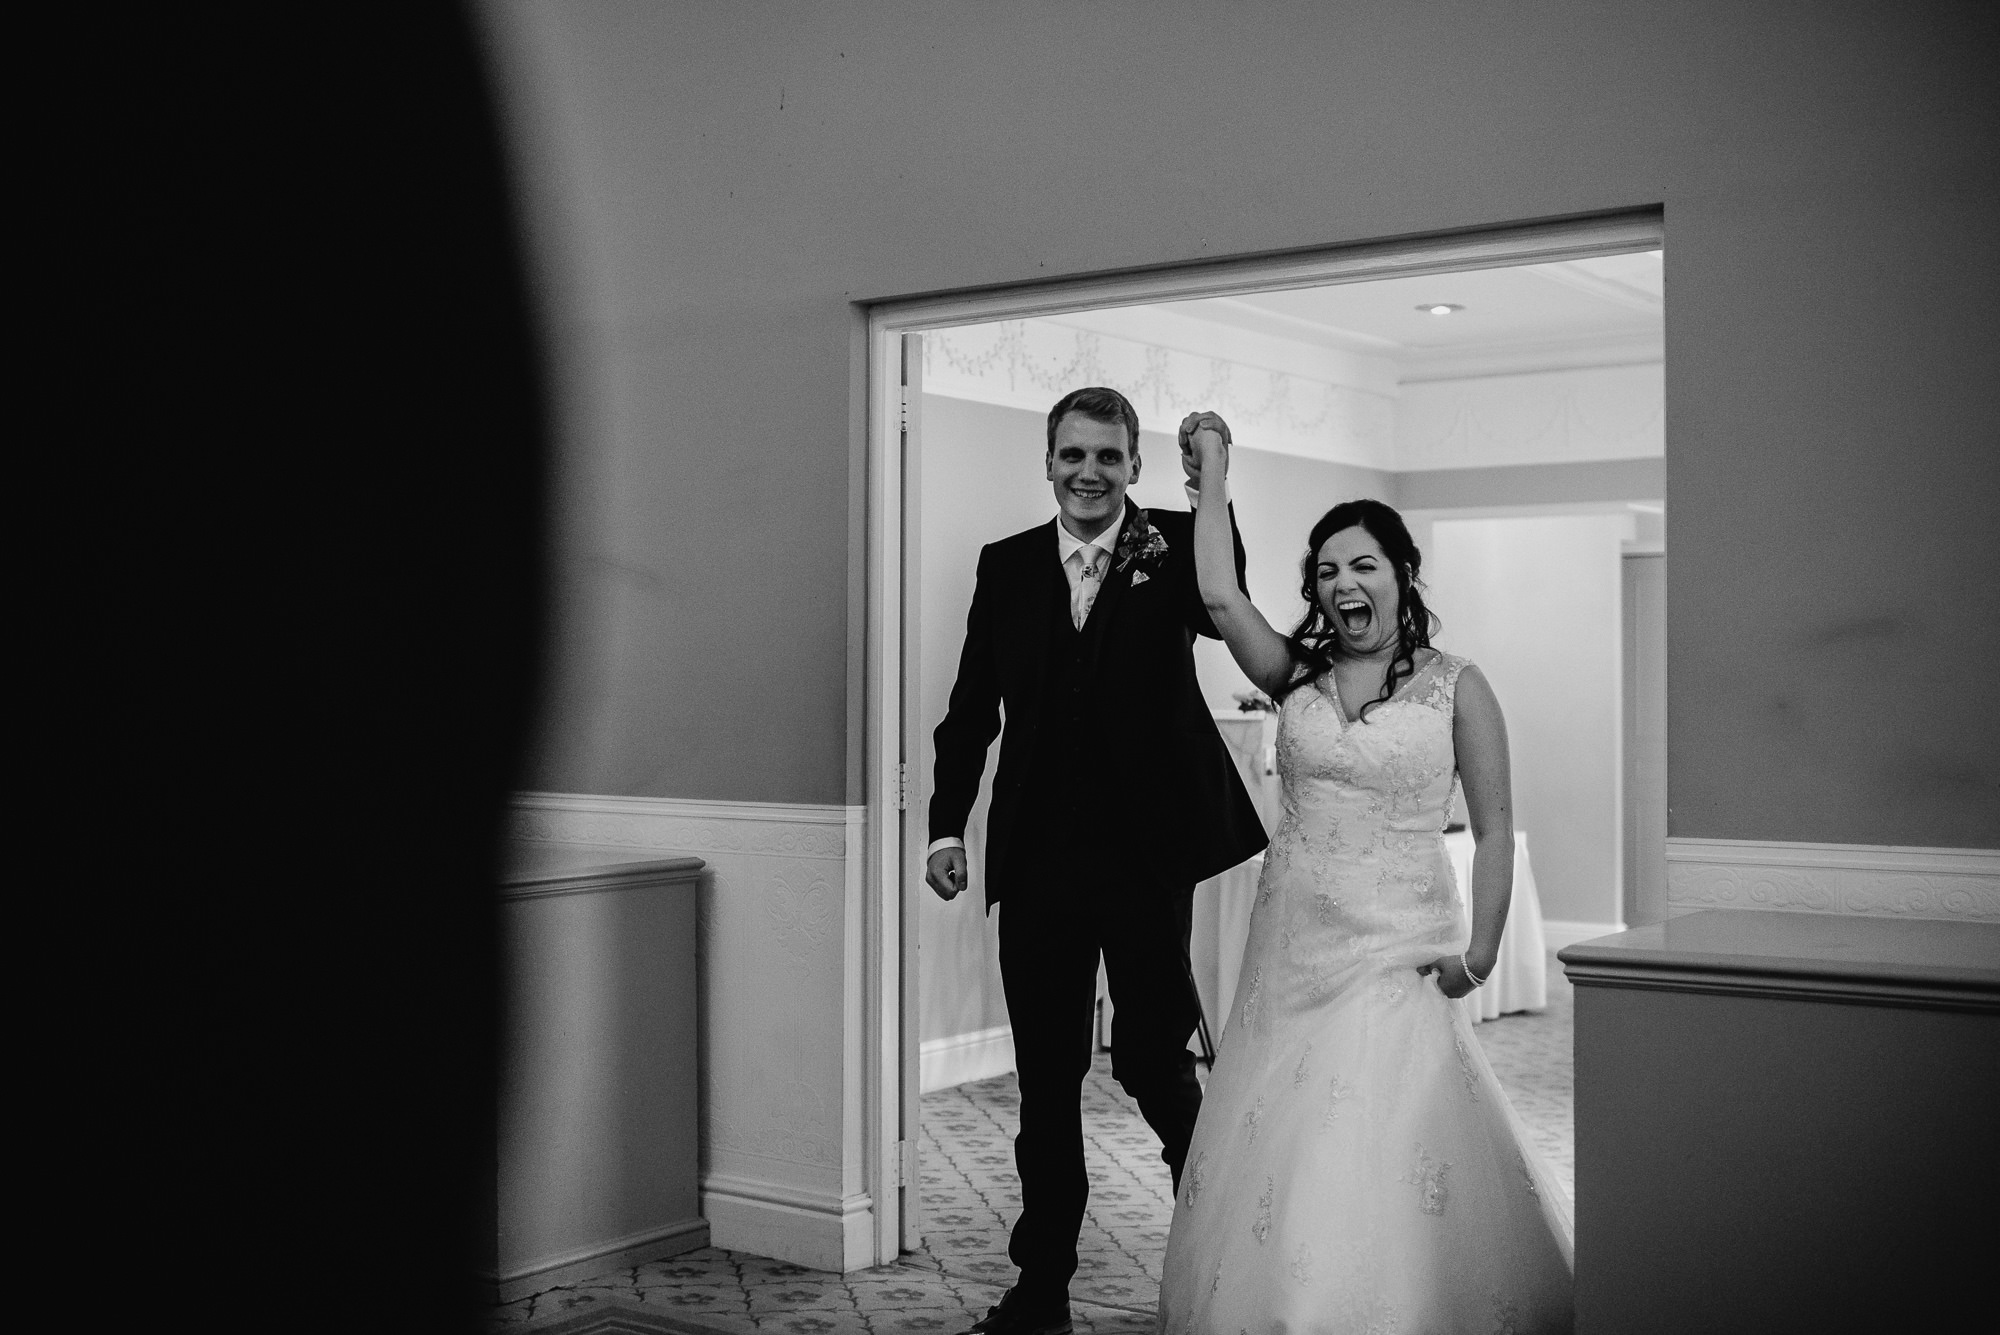 Statham lodge natural and candid wedding photography north west bested full time edding photographer adam joe roberts photography (73 of 96).jpg